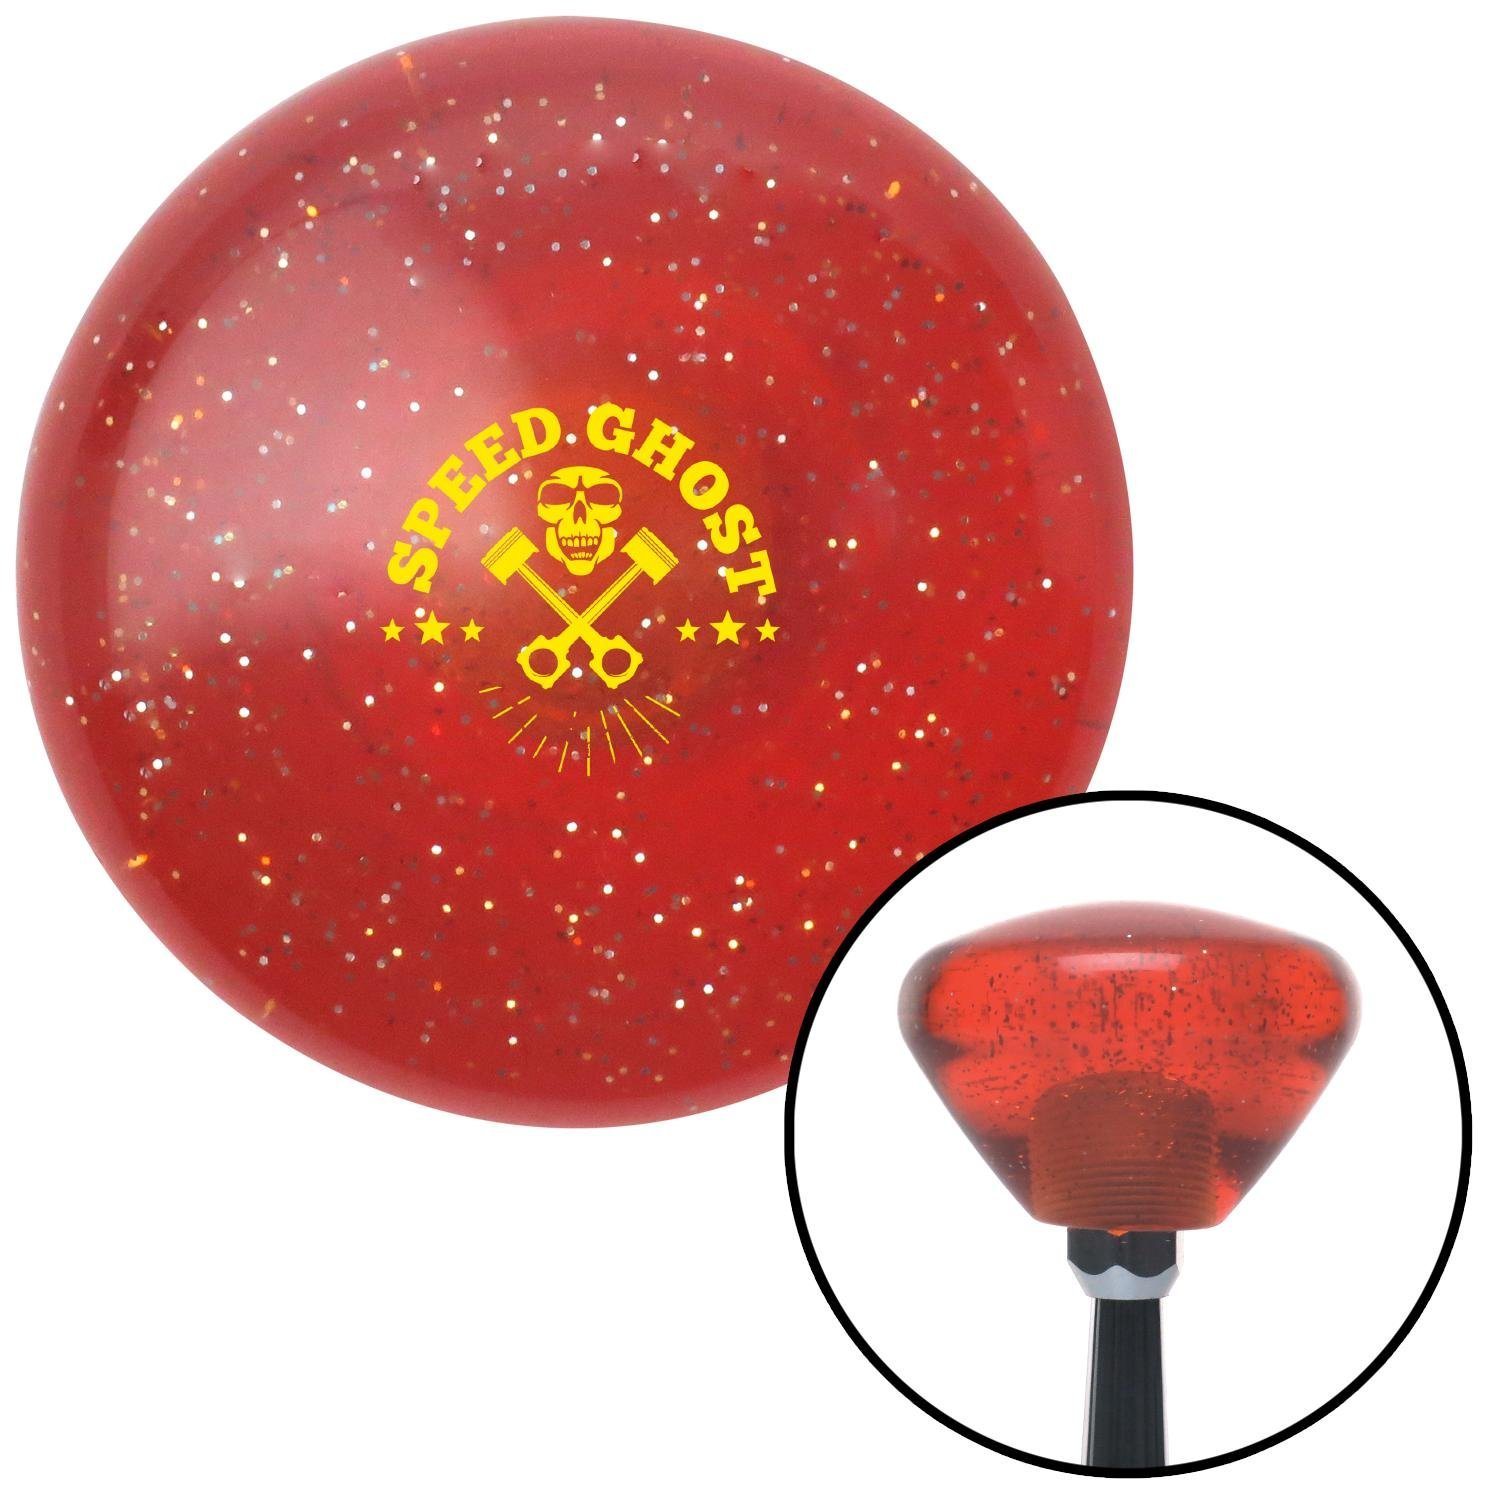 American Shifter 288532 Shift Knob Yellow Speed Ghost Orange Retro Metal Flake with M16 x 1.5 Insert